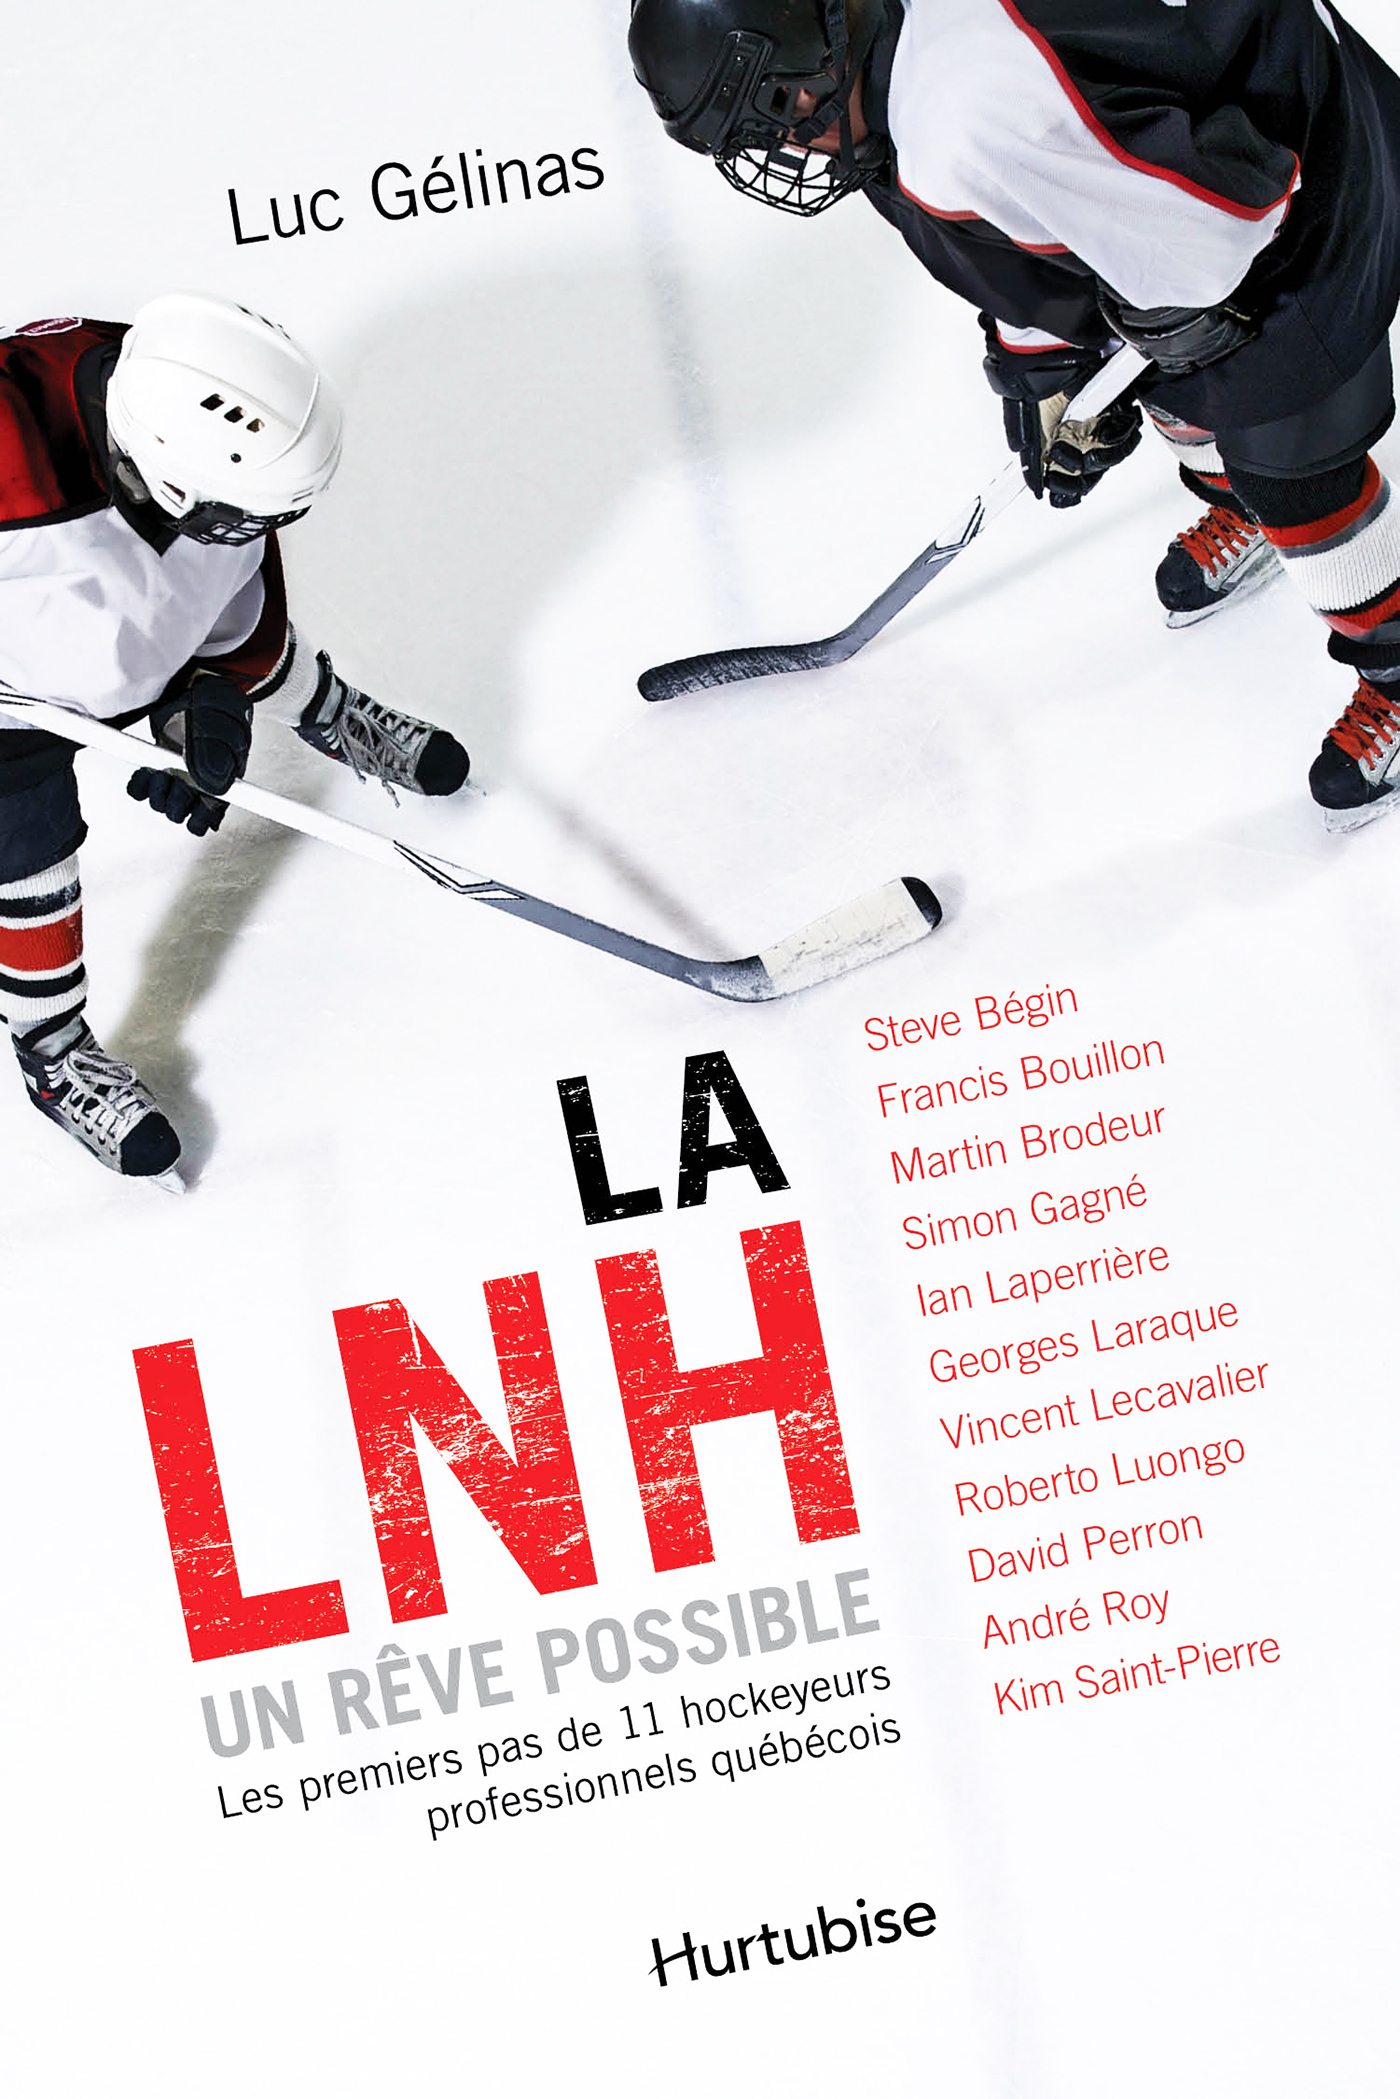 LNH, un rêve possible (La) - Luc Gélinas